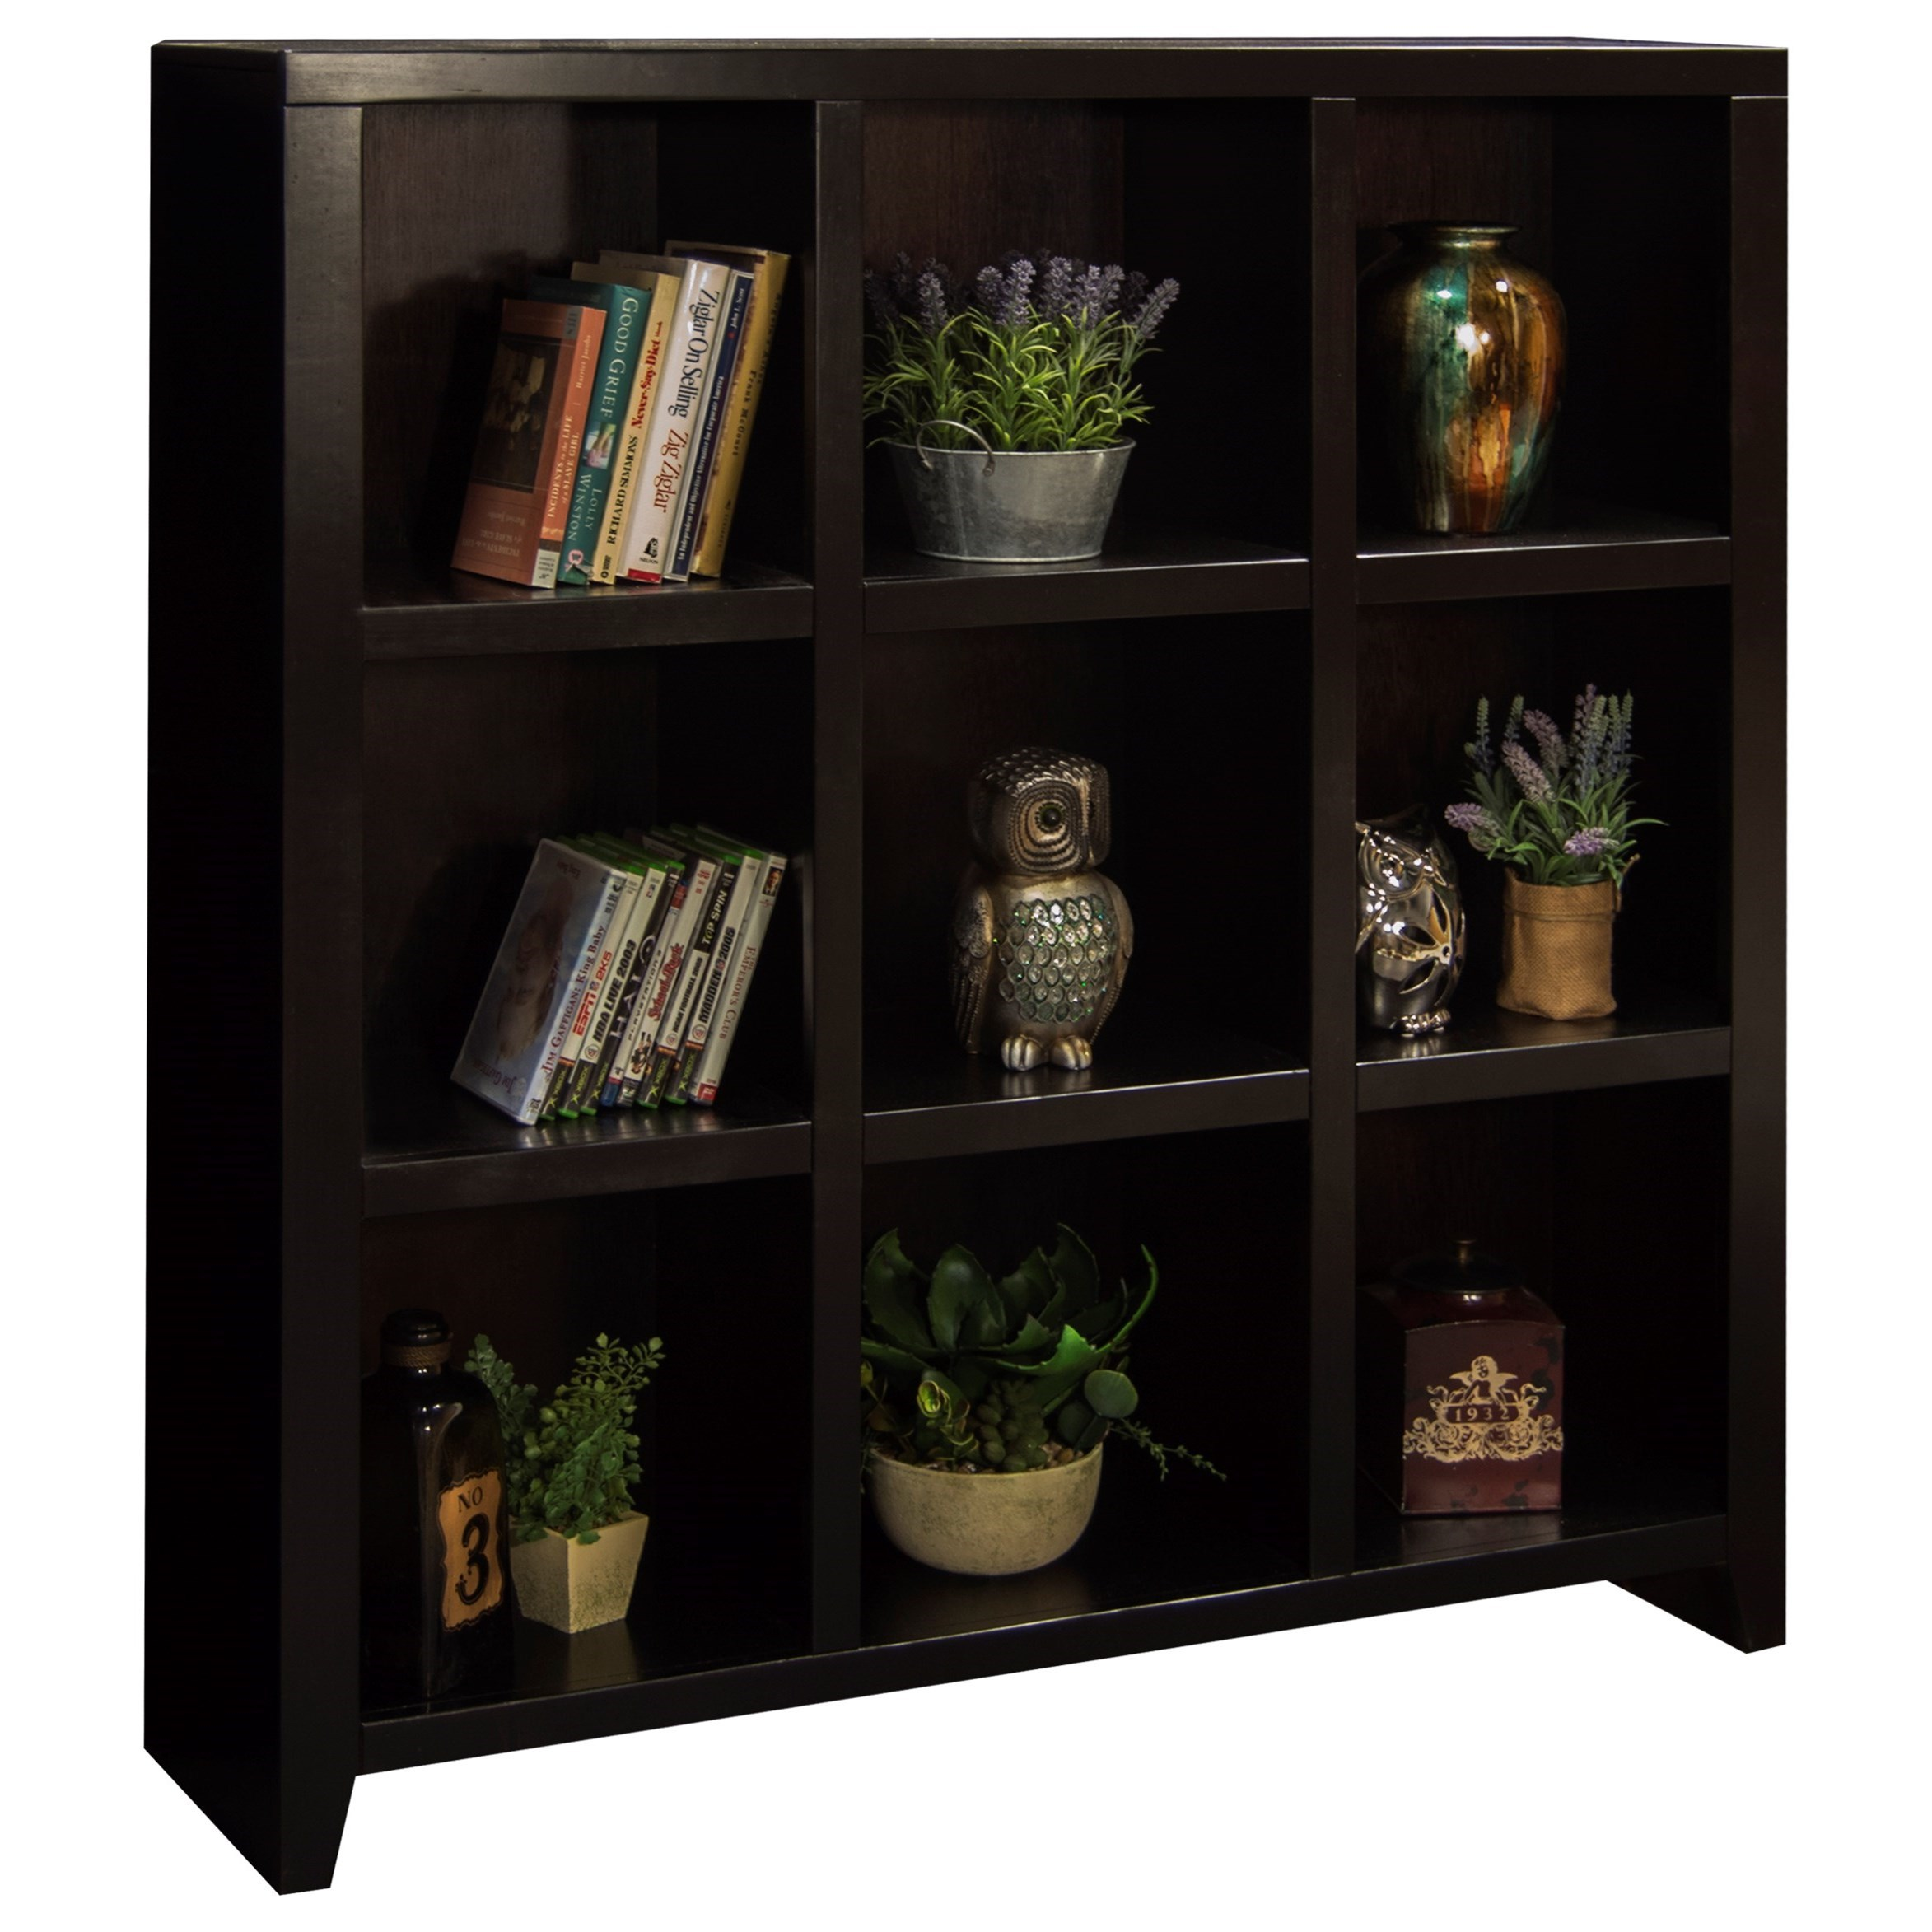 Legends Furniture Urban Loft 9 Cubicle Bookcase - Item Number: UL6203.MOC